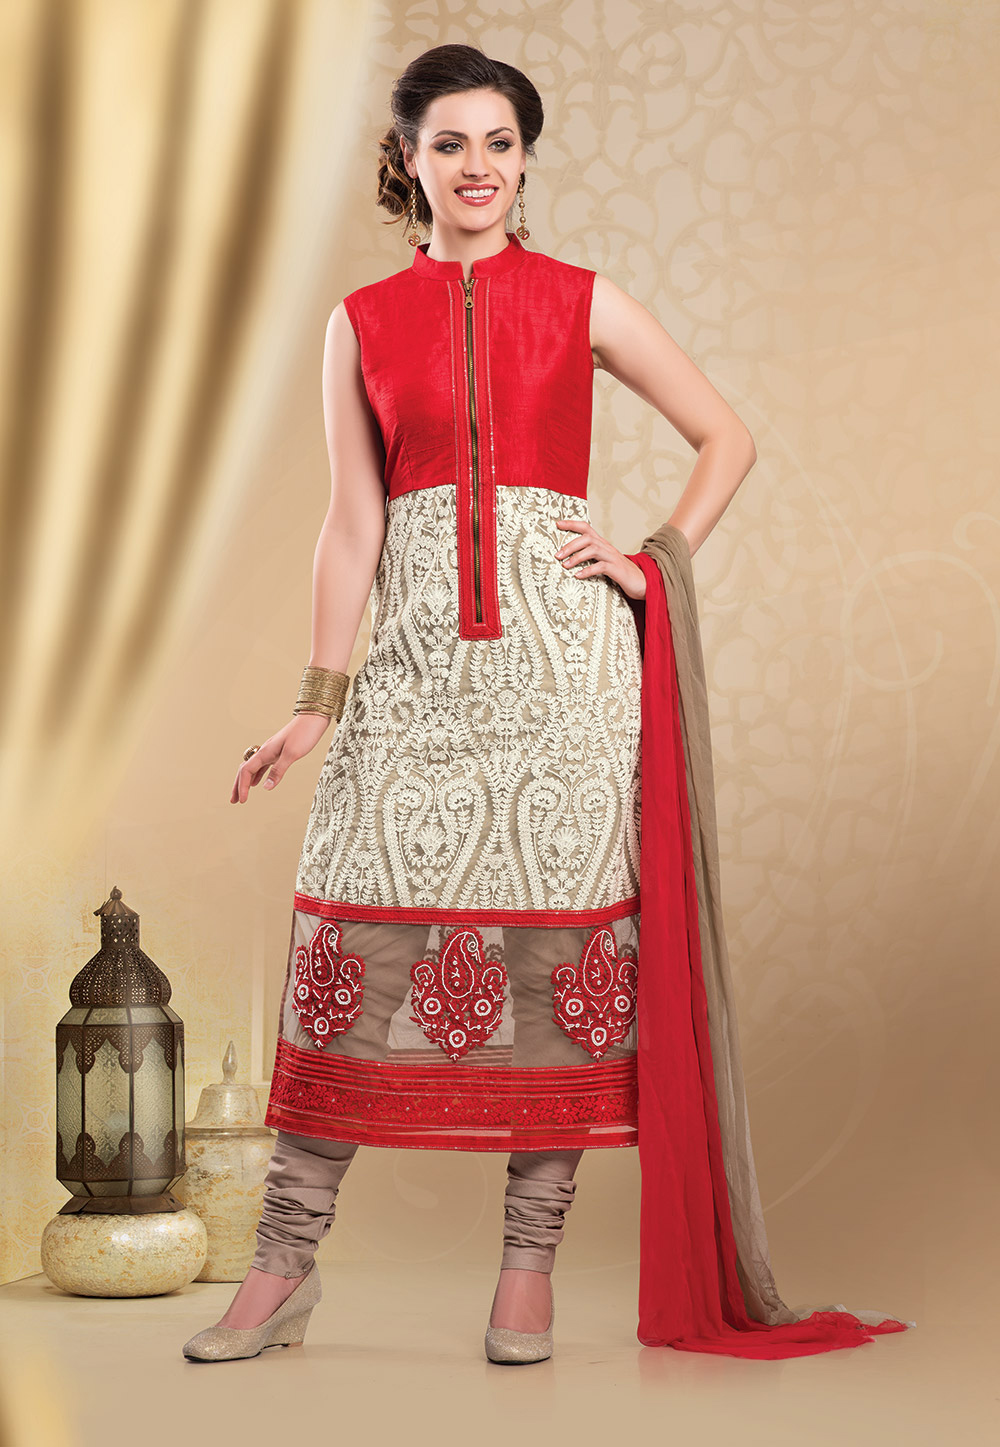 Red and Beige Dupion Silk and Net Readymade Churidar Kameez